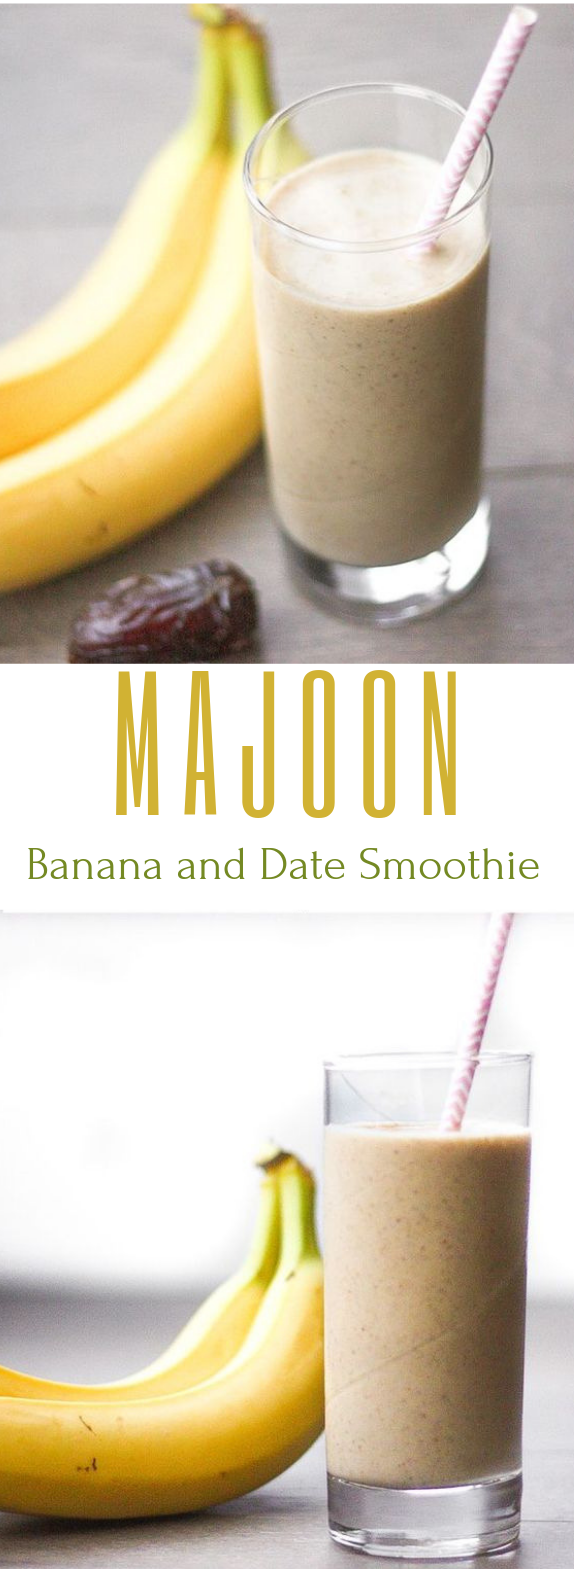 MAJOON (BANANA AND DATE) SMOOTHIE #drink #smoothie